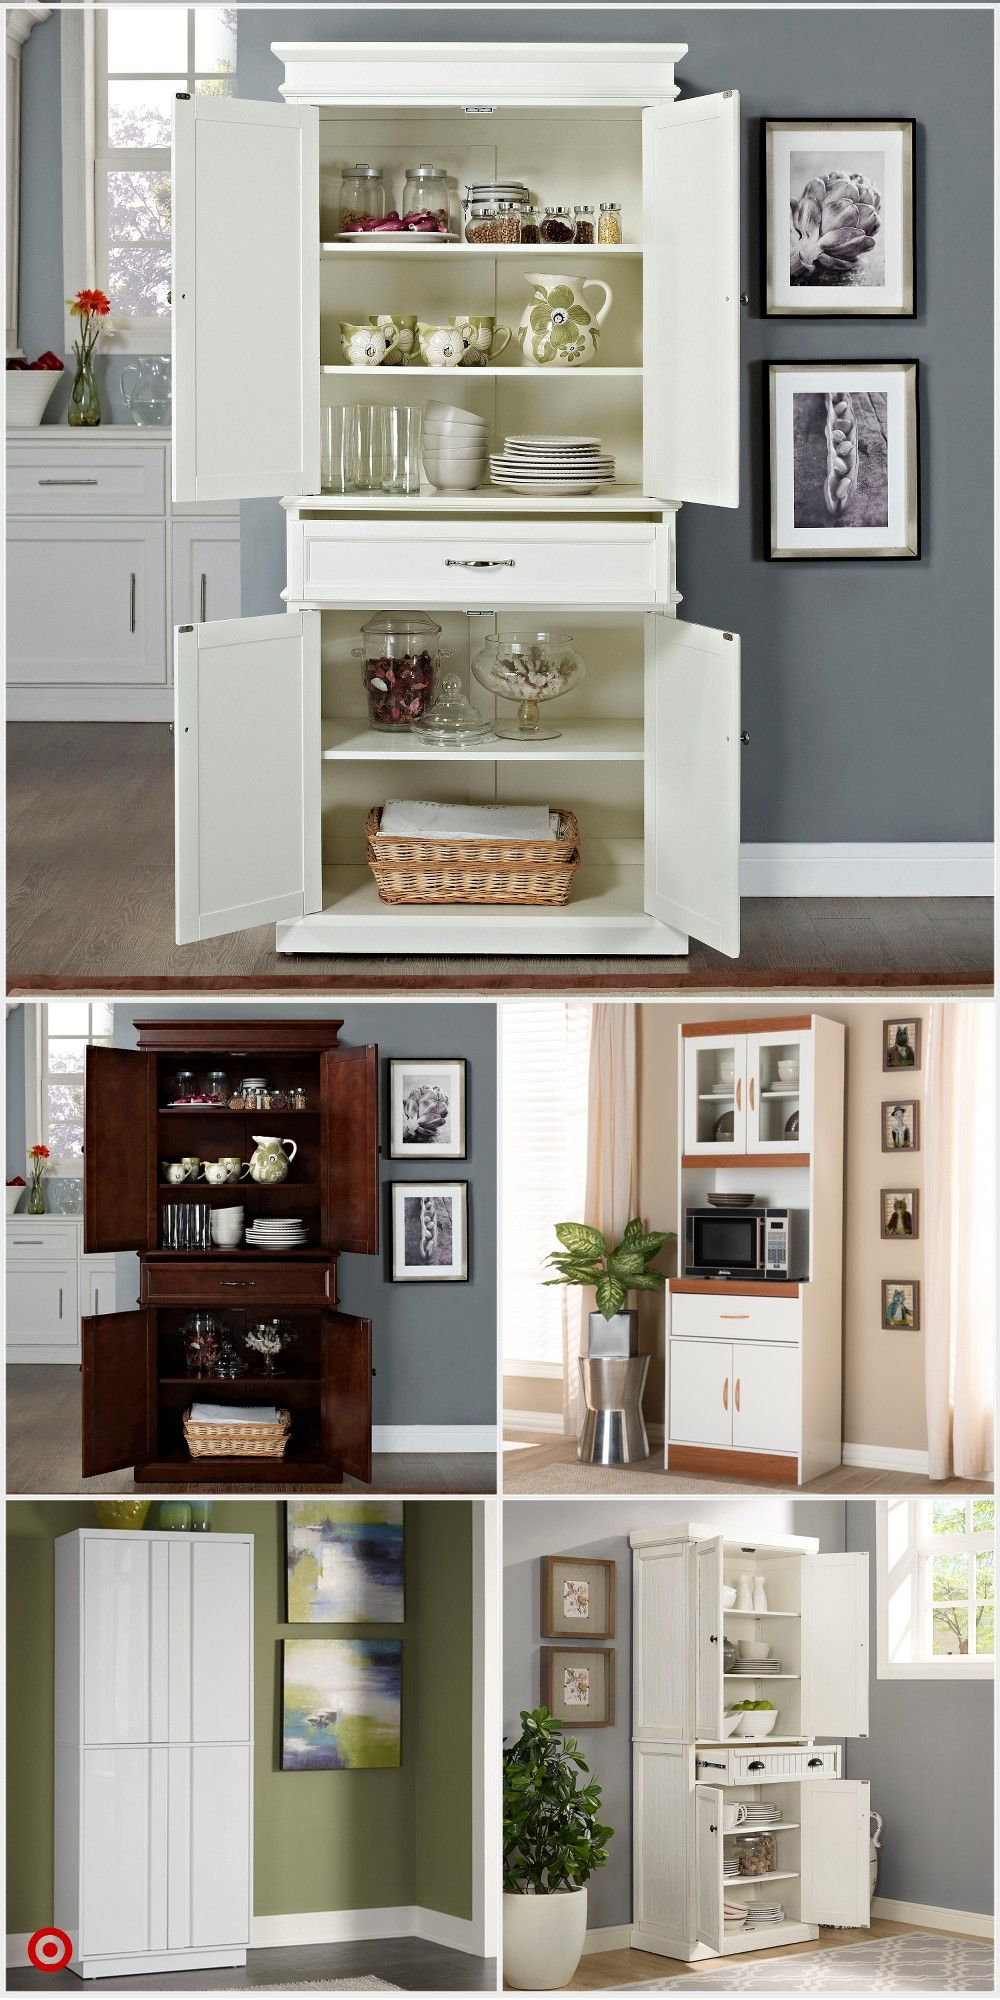 Shop Target For Kitchen Storage Pantry You Will Love At Great Low Prices Fr Interior Design Kitchen Small Kitchen Interior Design Modern Kitchen Design Centre